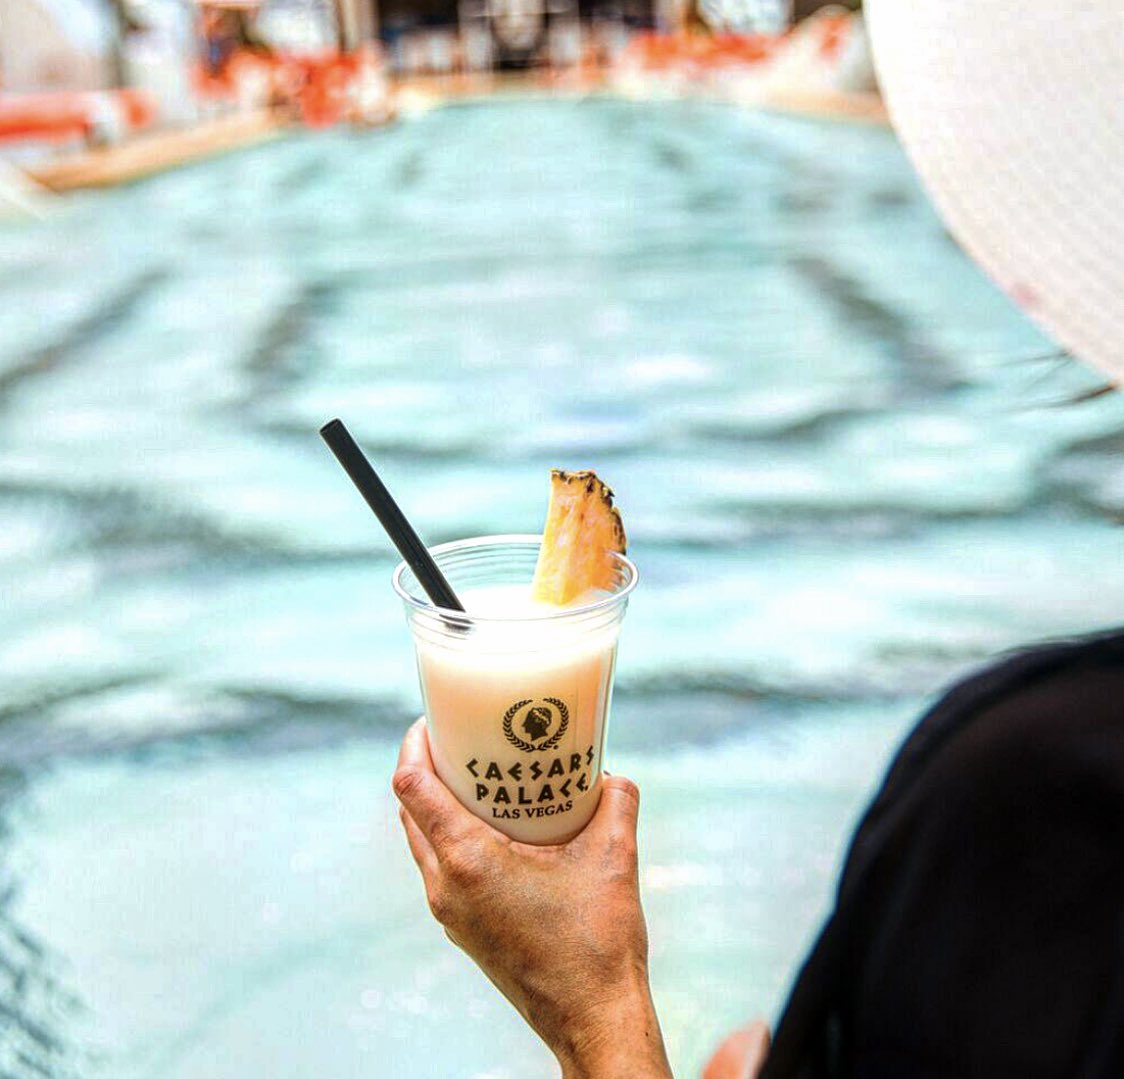 Raise your  for the weekend! #HappyFriday #VegasSummers<br>http://pic.twitter.com/eEGVJl4y6Z